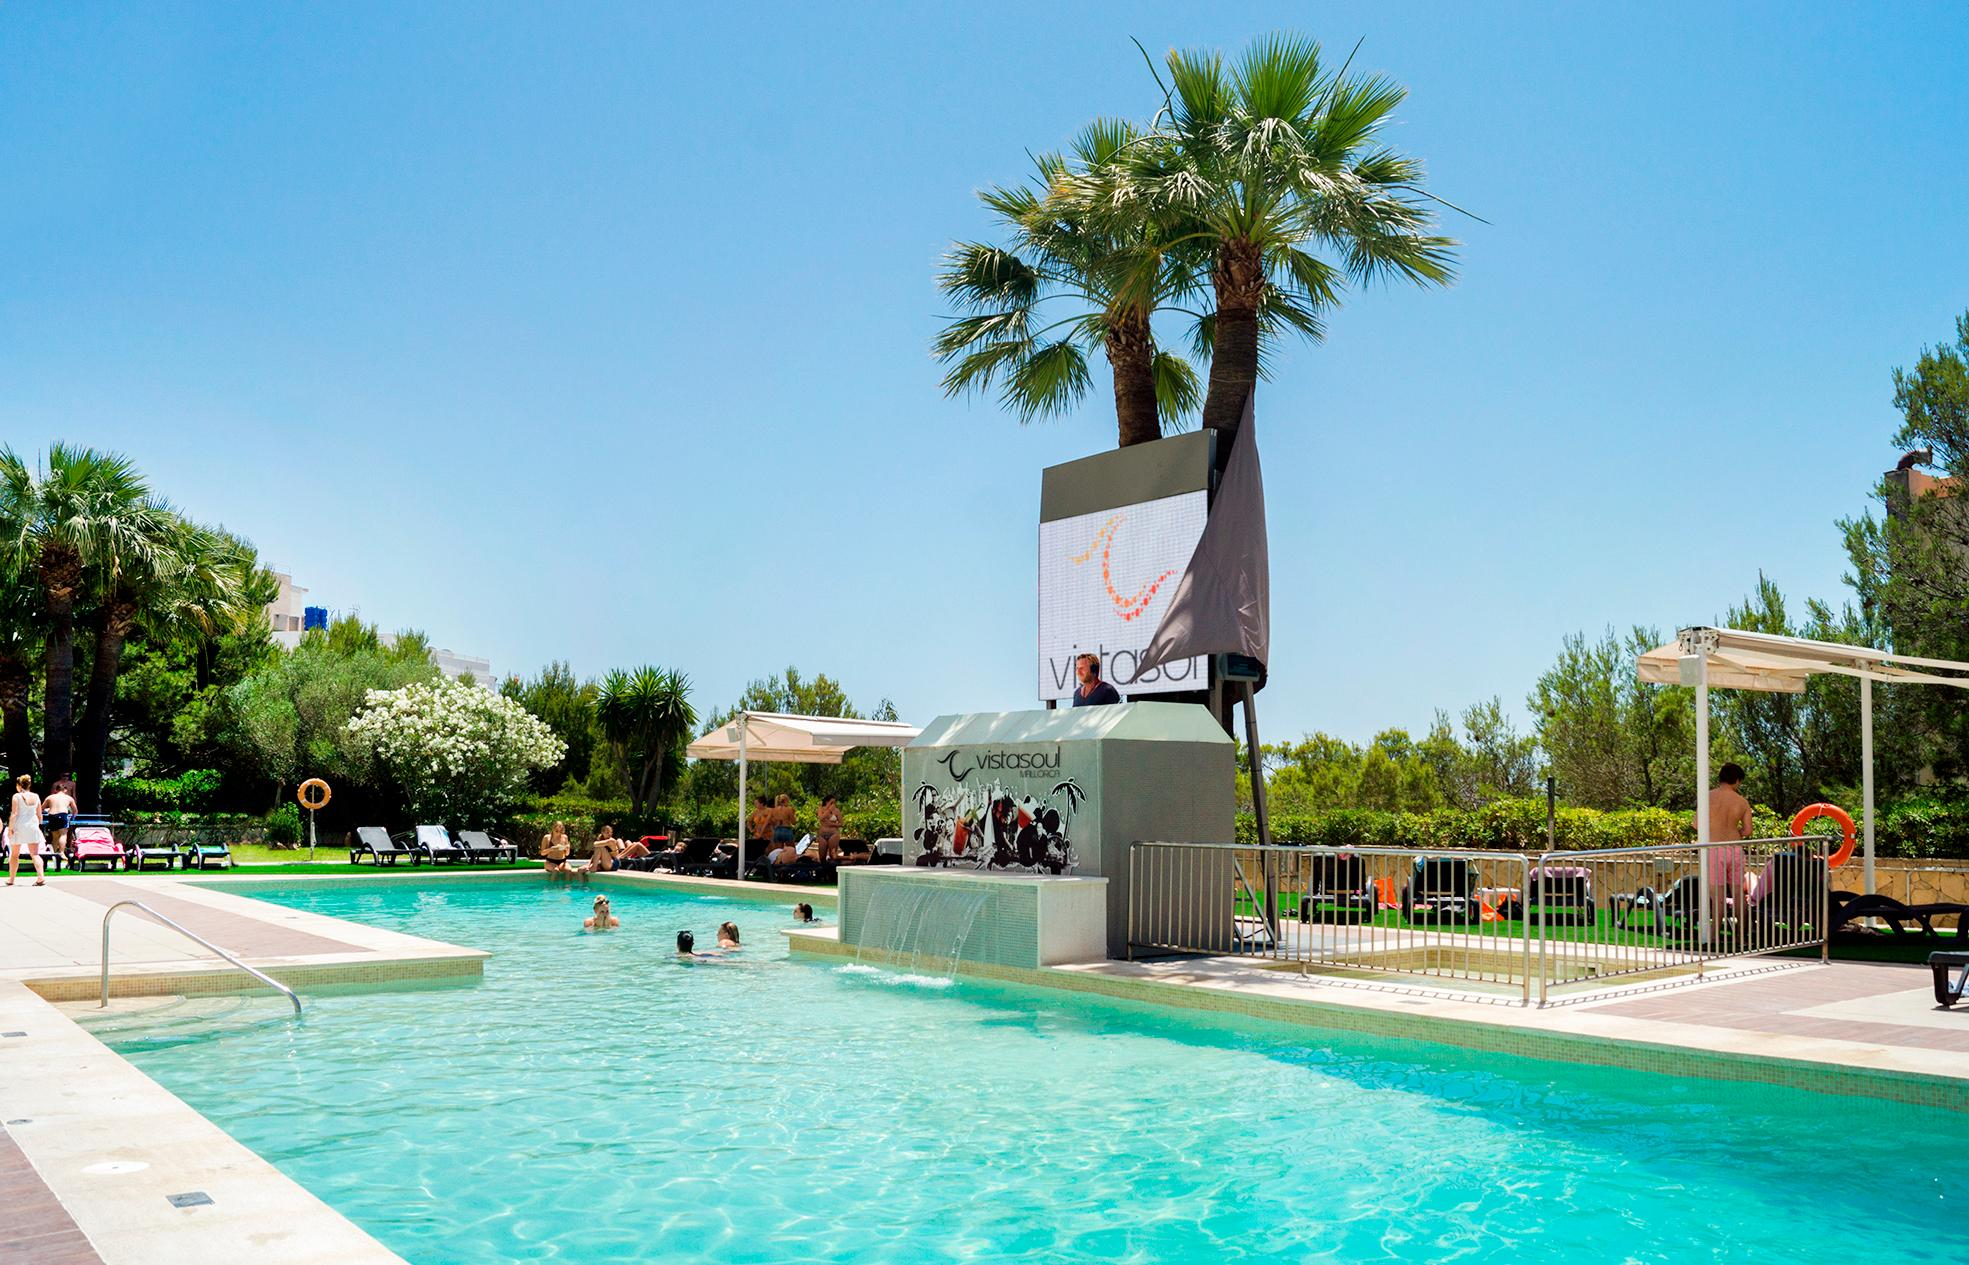 Vistasol Apartments in Magaluf, Majorca, Balearic Islands